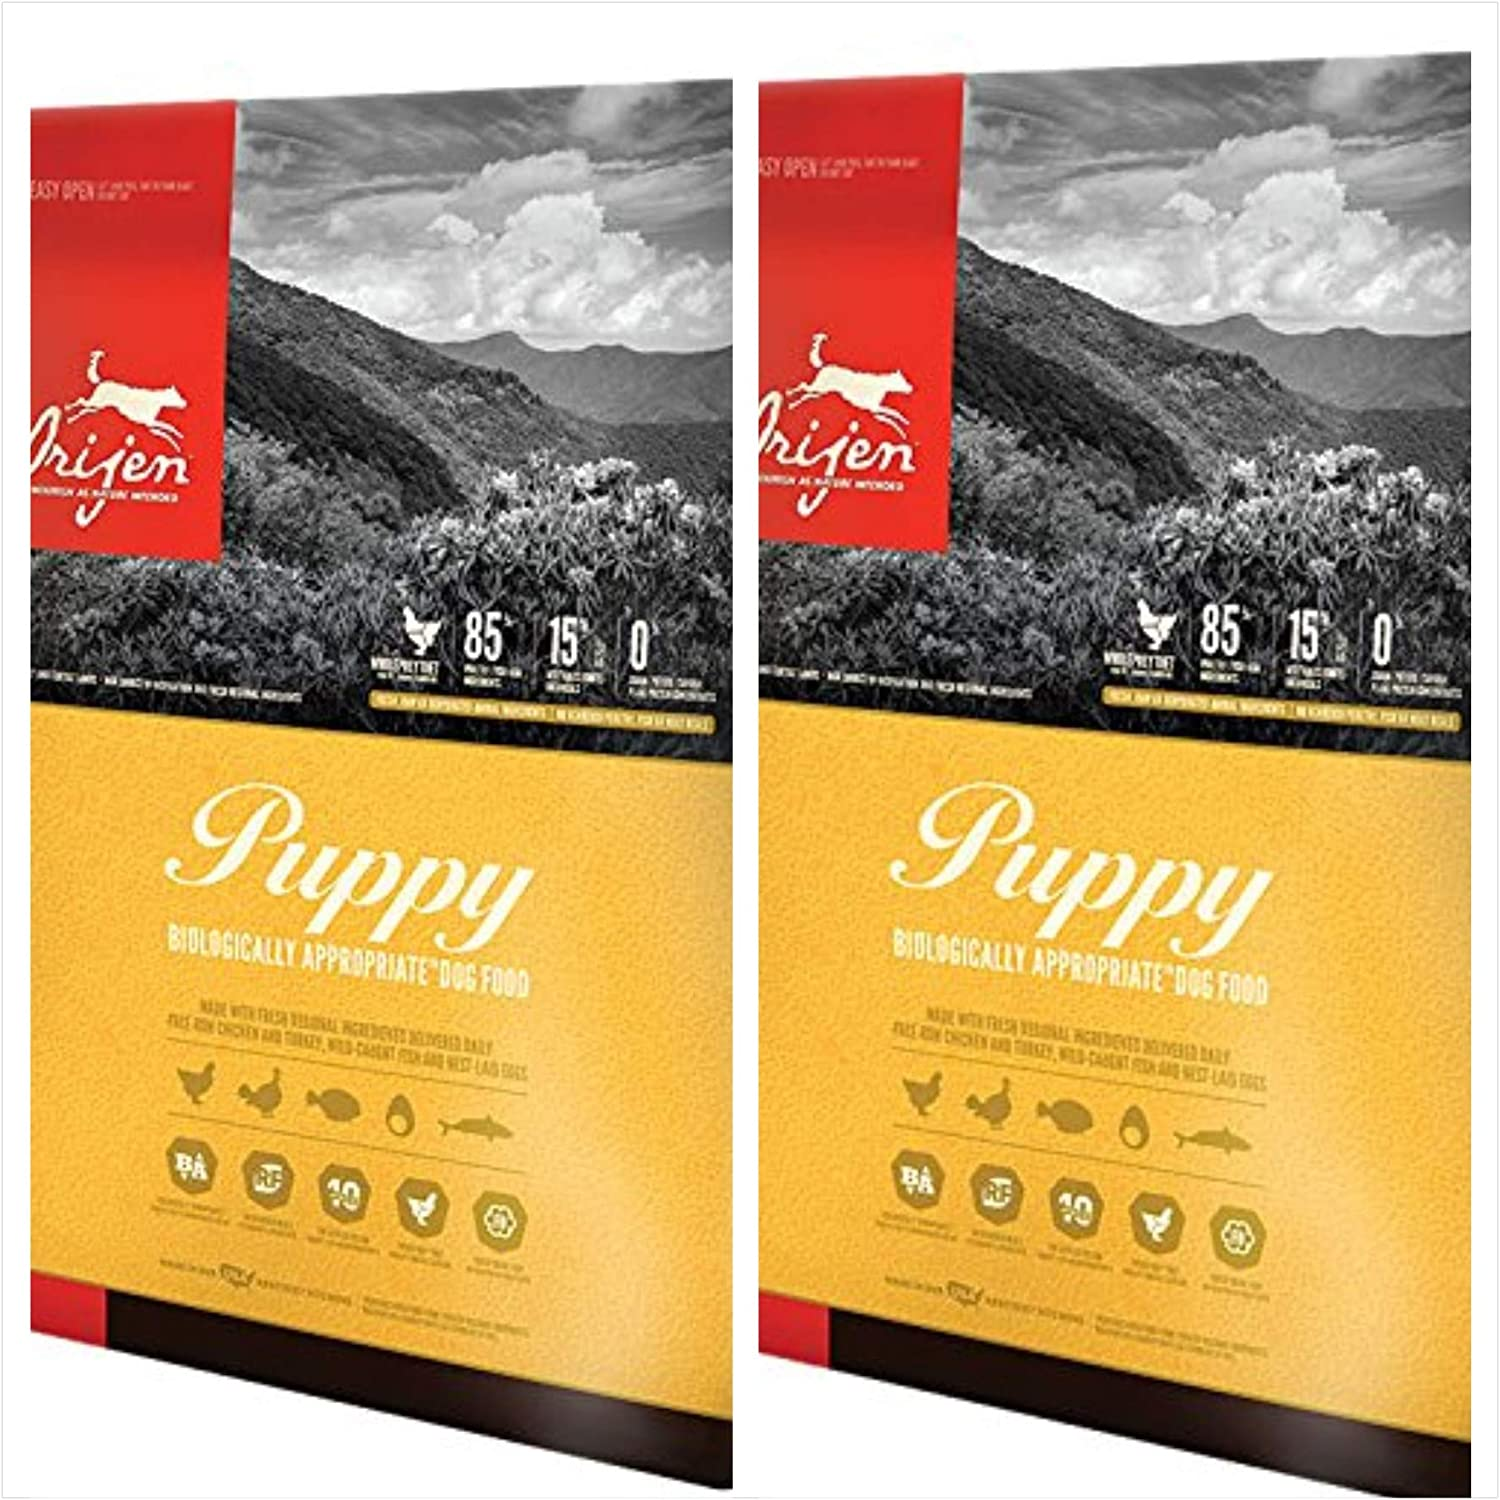 Orijen 2 Pack Puppy Dry Dog Food Formula 13 lbs. Each. Puppy Food 2 Bags = 26 Total Pounds